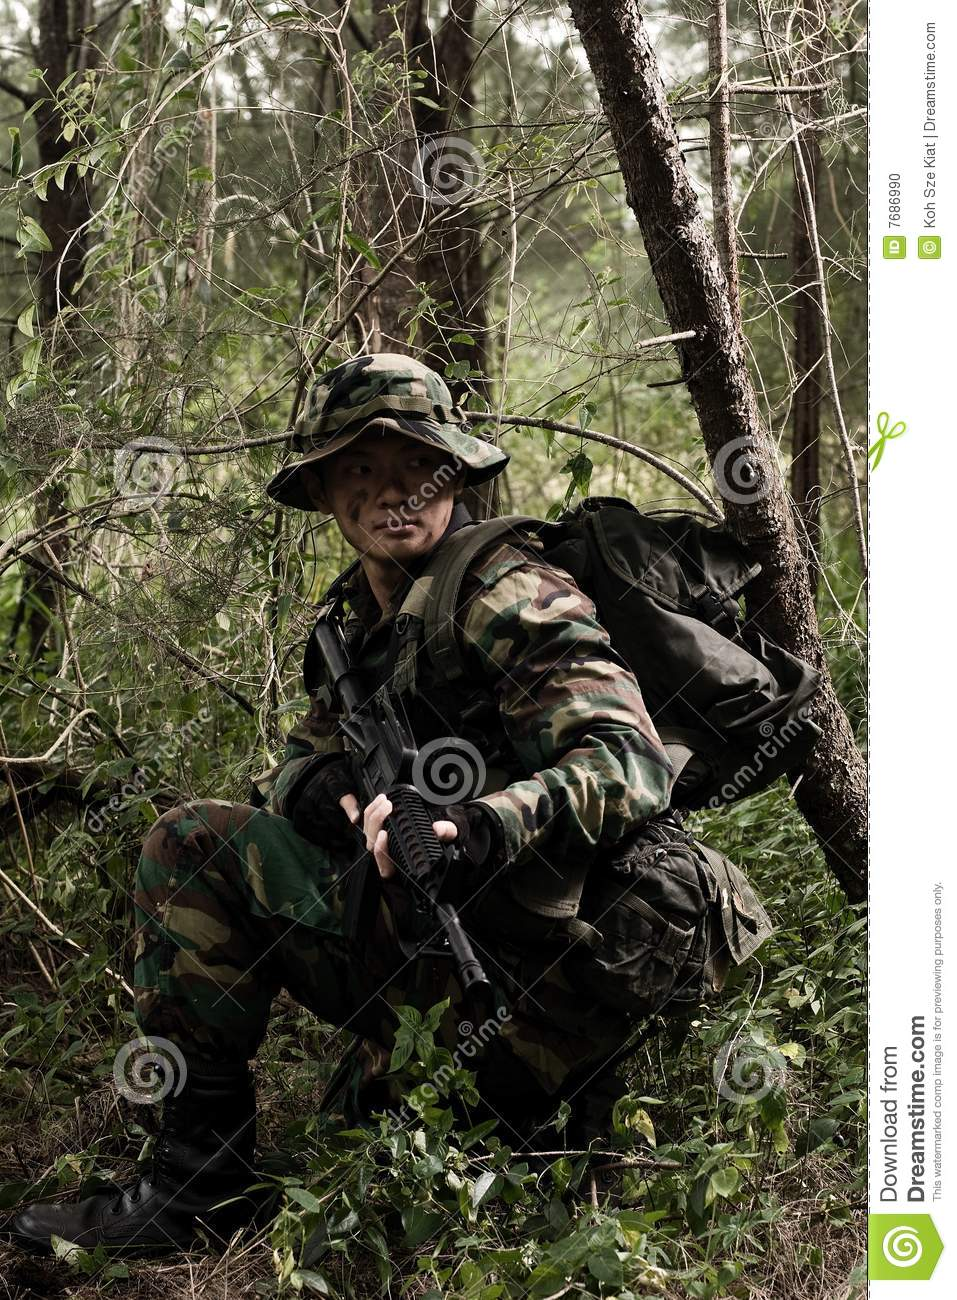 Battlefield special forces